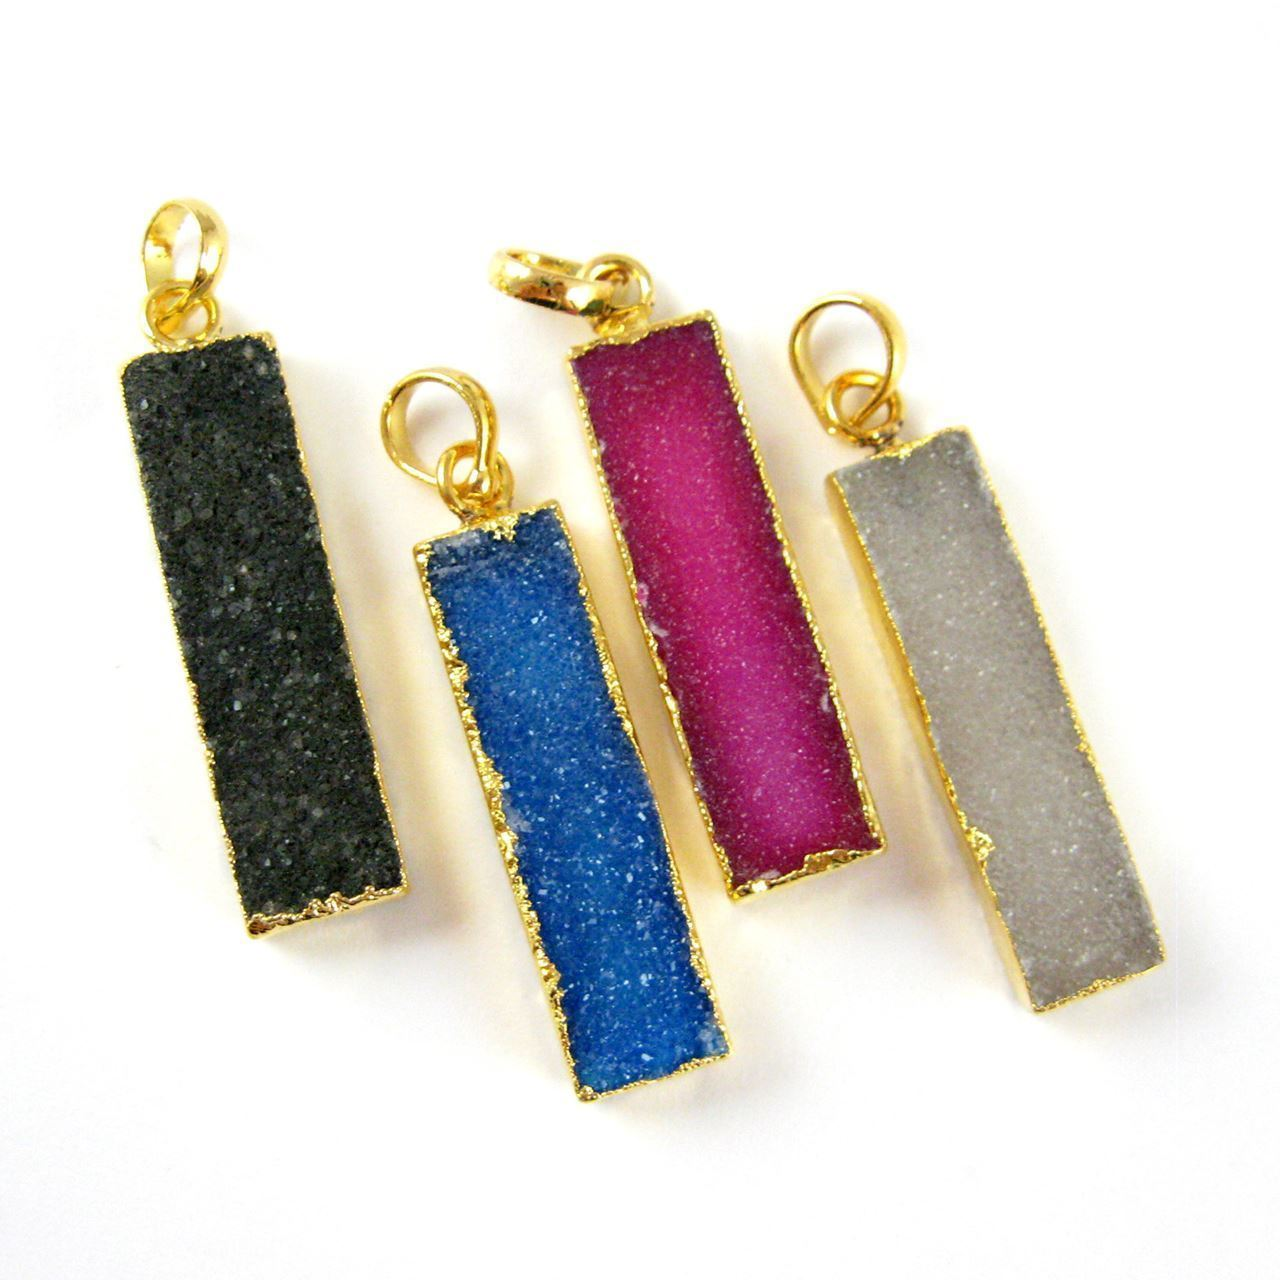 Natural Druzy Agate Bar Pendant, 24K Gold plated Long Vertical Bar-Pink